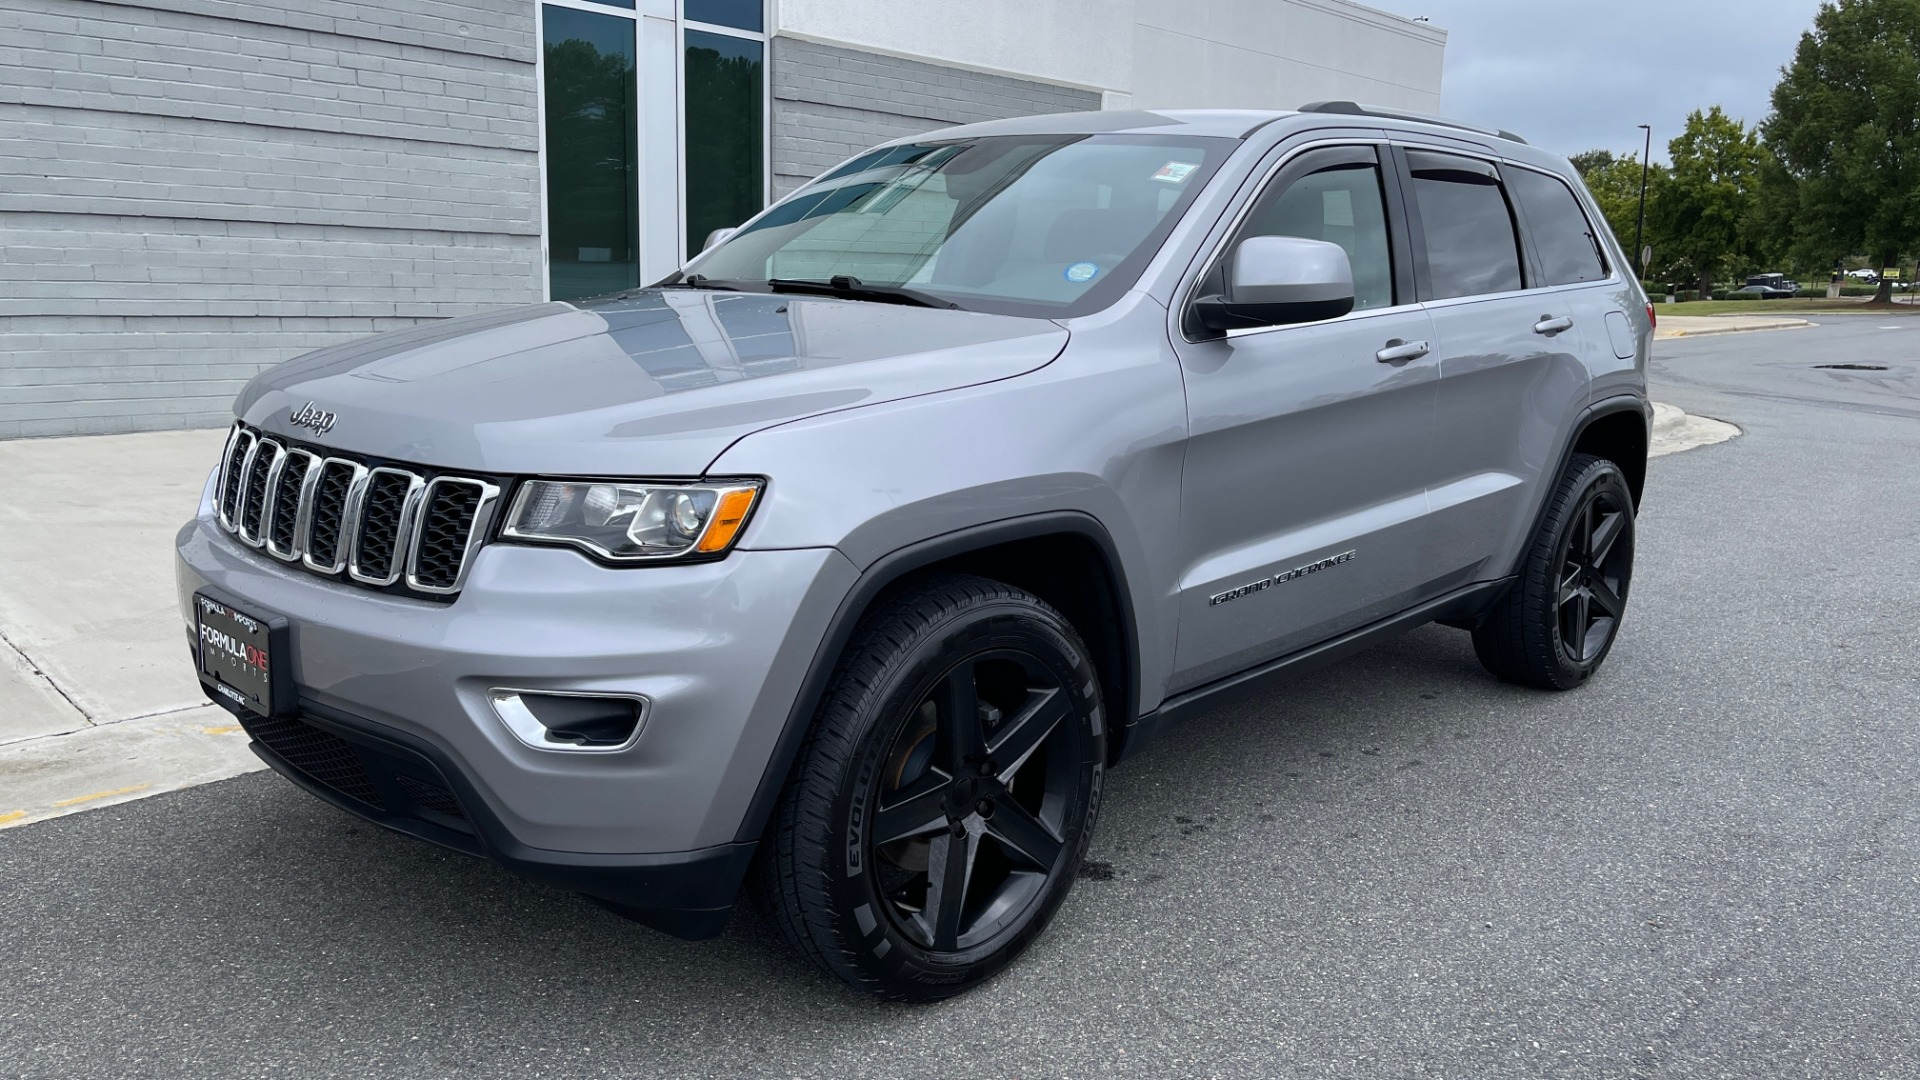 Used 2017 Jeep GRAND CHEROKEE LAREDO E 4X4 / KEYLESS-GO / 8.4IN TOUCH SCREEN / REARVIEW for sale $27,595 at Formula Imports in Charlotte NC 28227 3